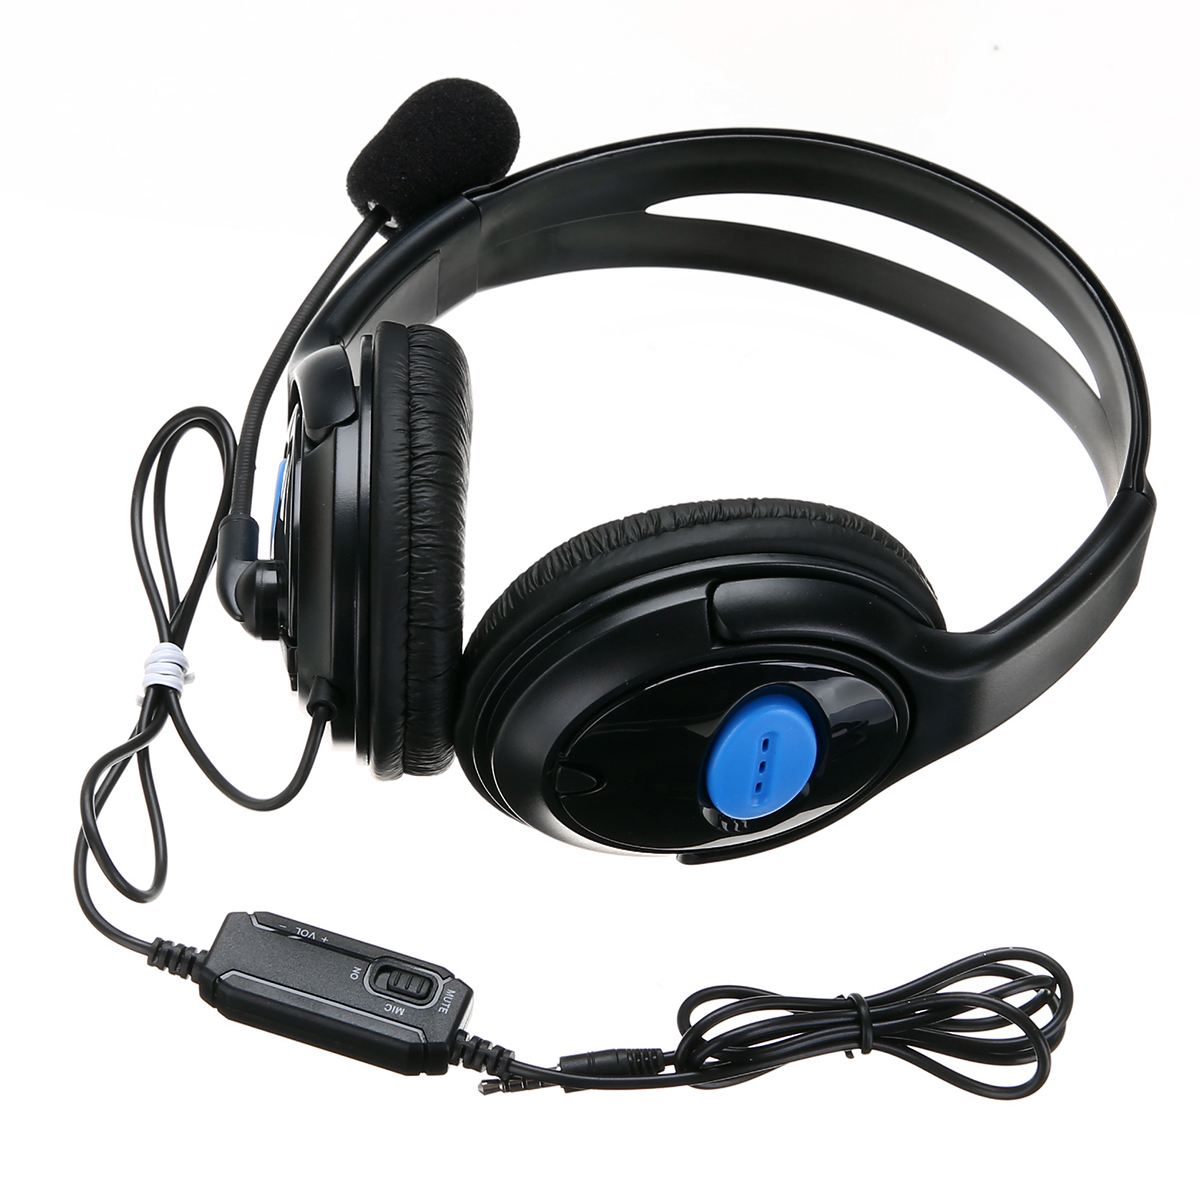 Mayitr 1pc 3.5mm Stereo Wired Gaming Headphone Professional Replacement Headset Earphone with Mic For PS4 PC